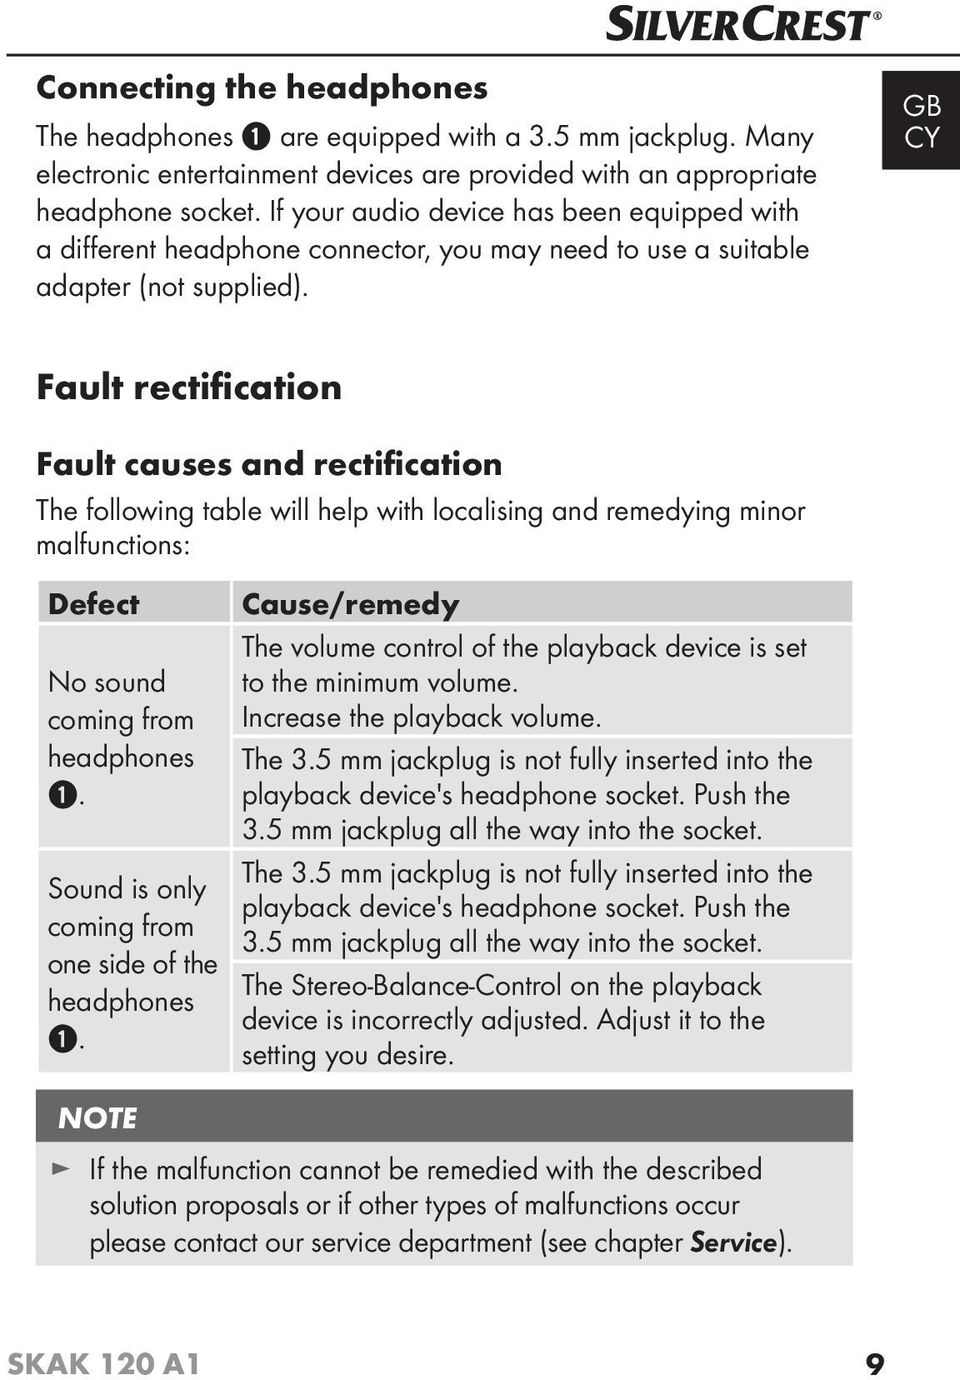 GB Fault rectification Fault causes and rectification The following table will help with localising and remedying minor malfunctions: Defect No sound coming from headphones 1.